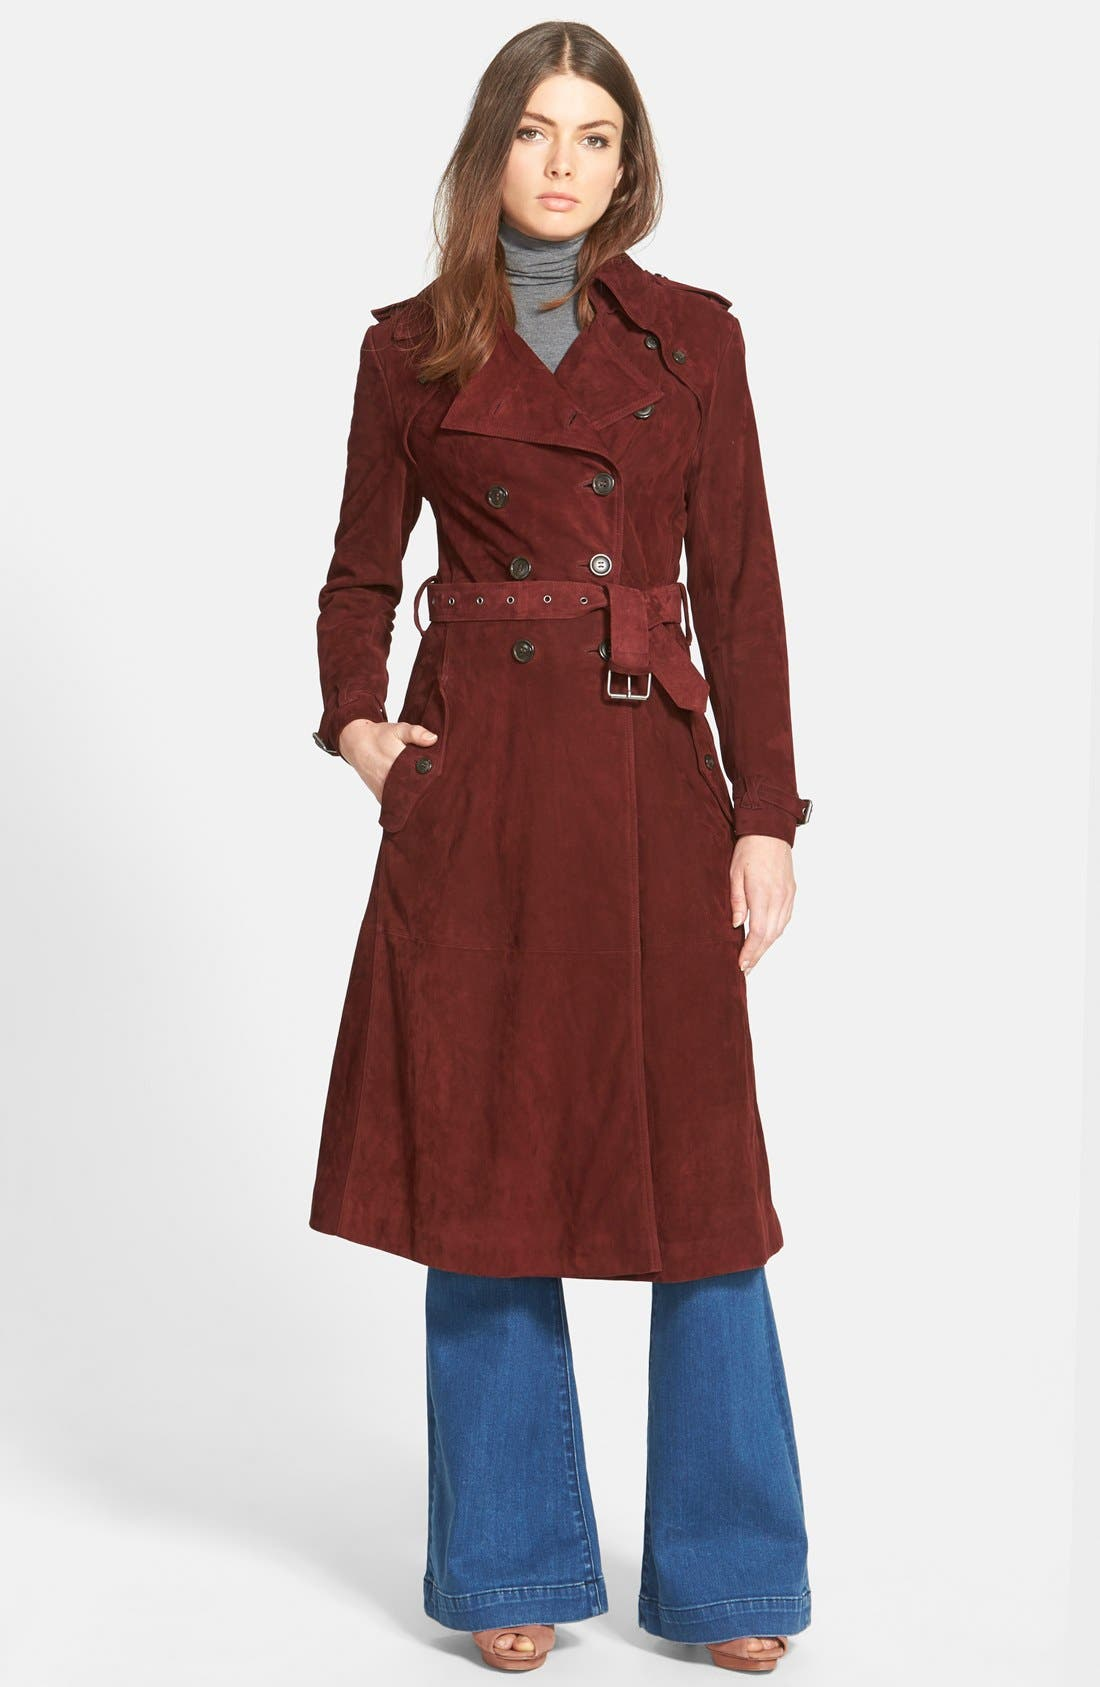 Rebecca Minkoff Amis Suede Trench Coat Nordstrom